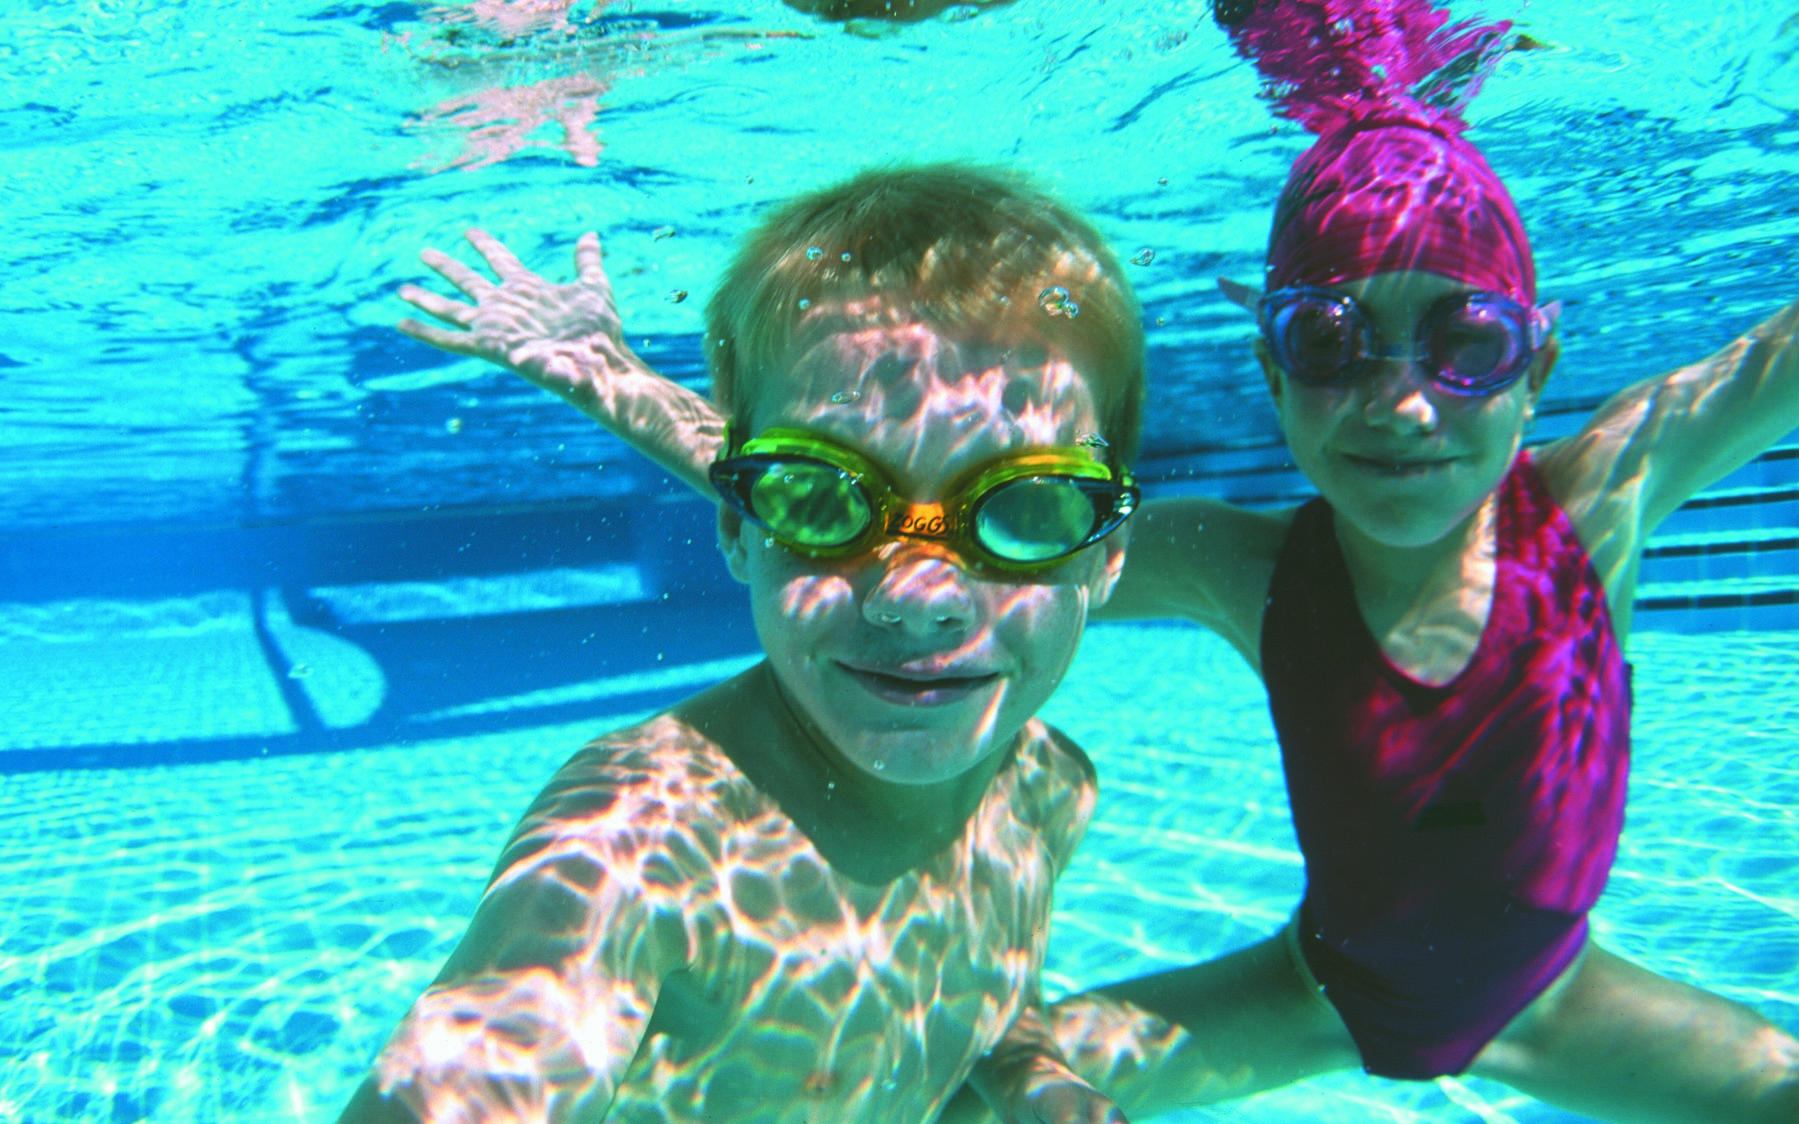 The Aquatic Youth Club starts on September 16th